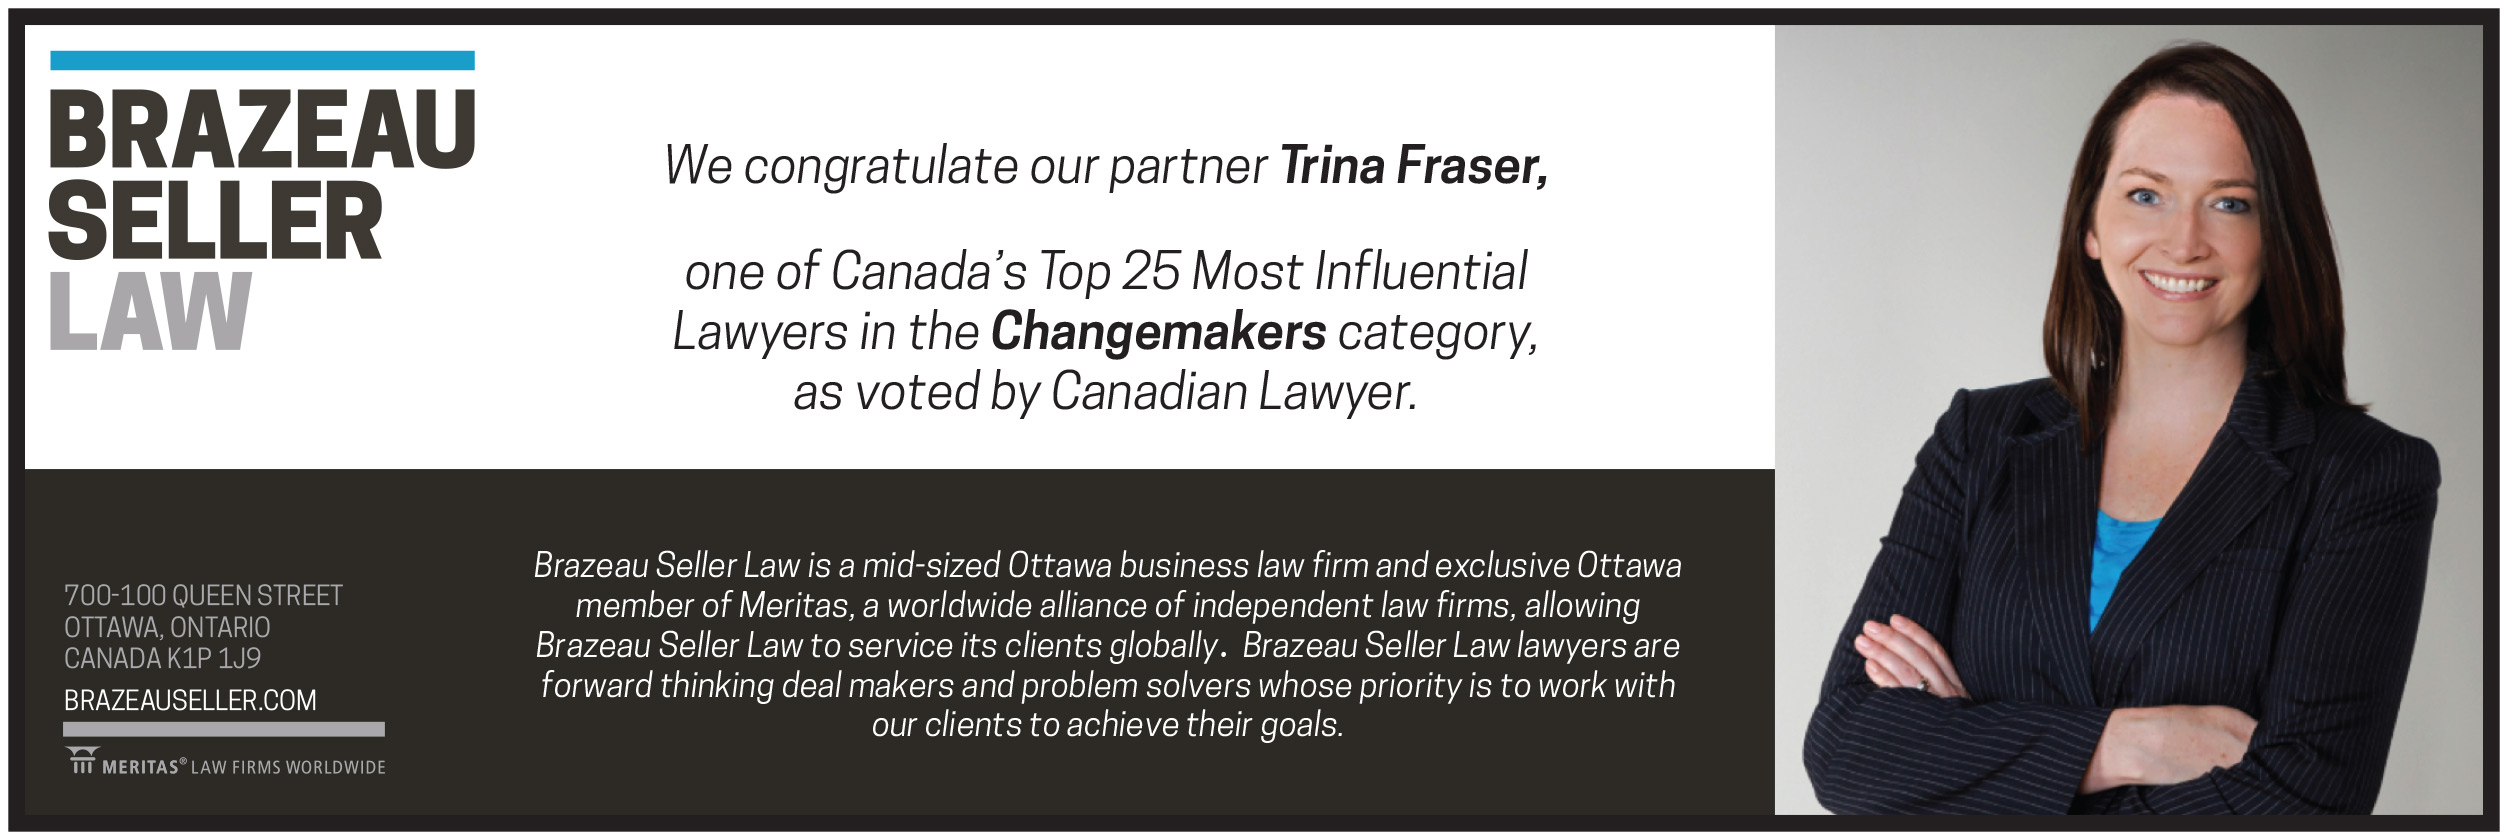 trina fraser top 25 lawyer award